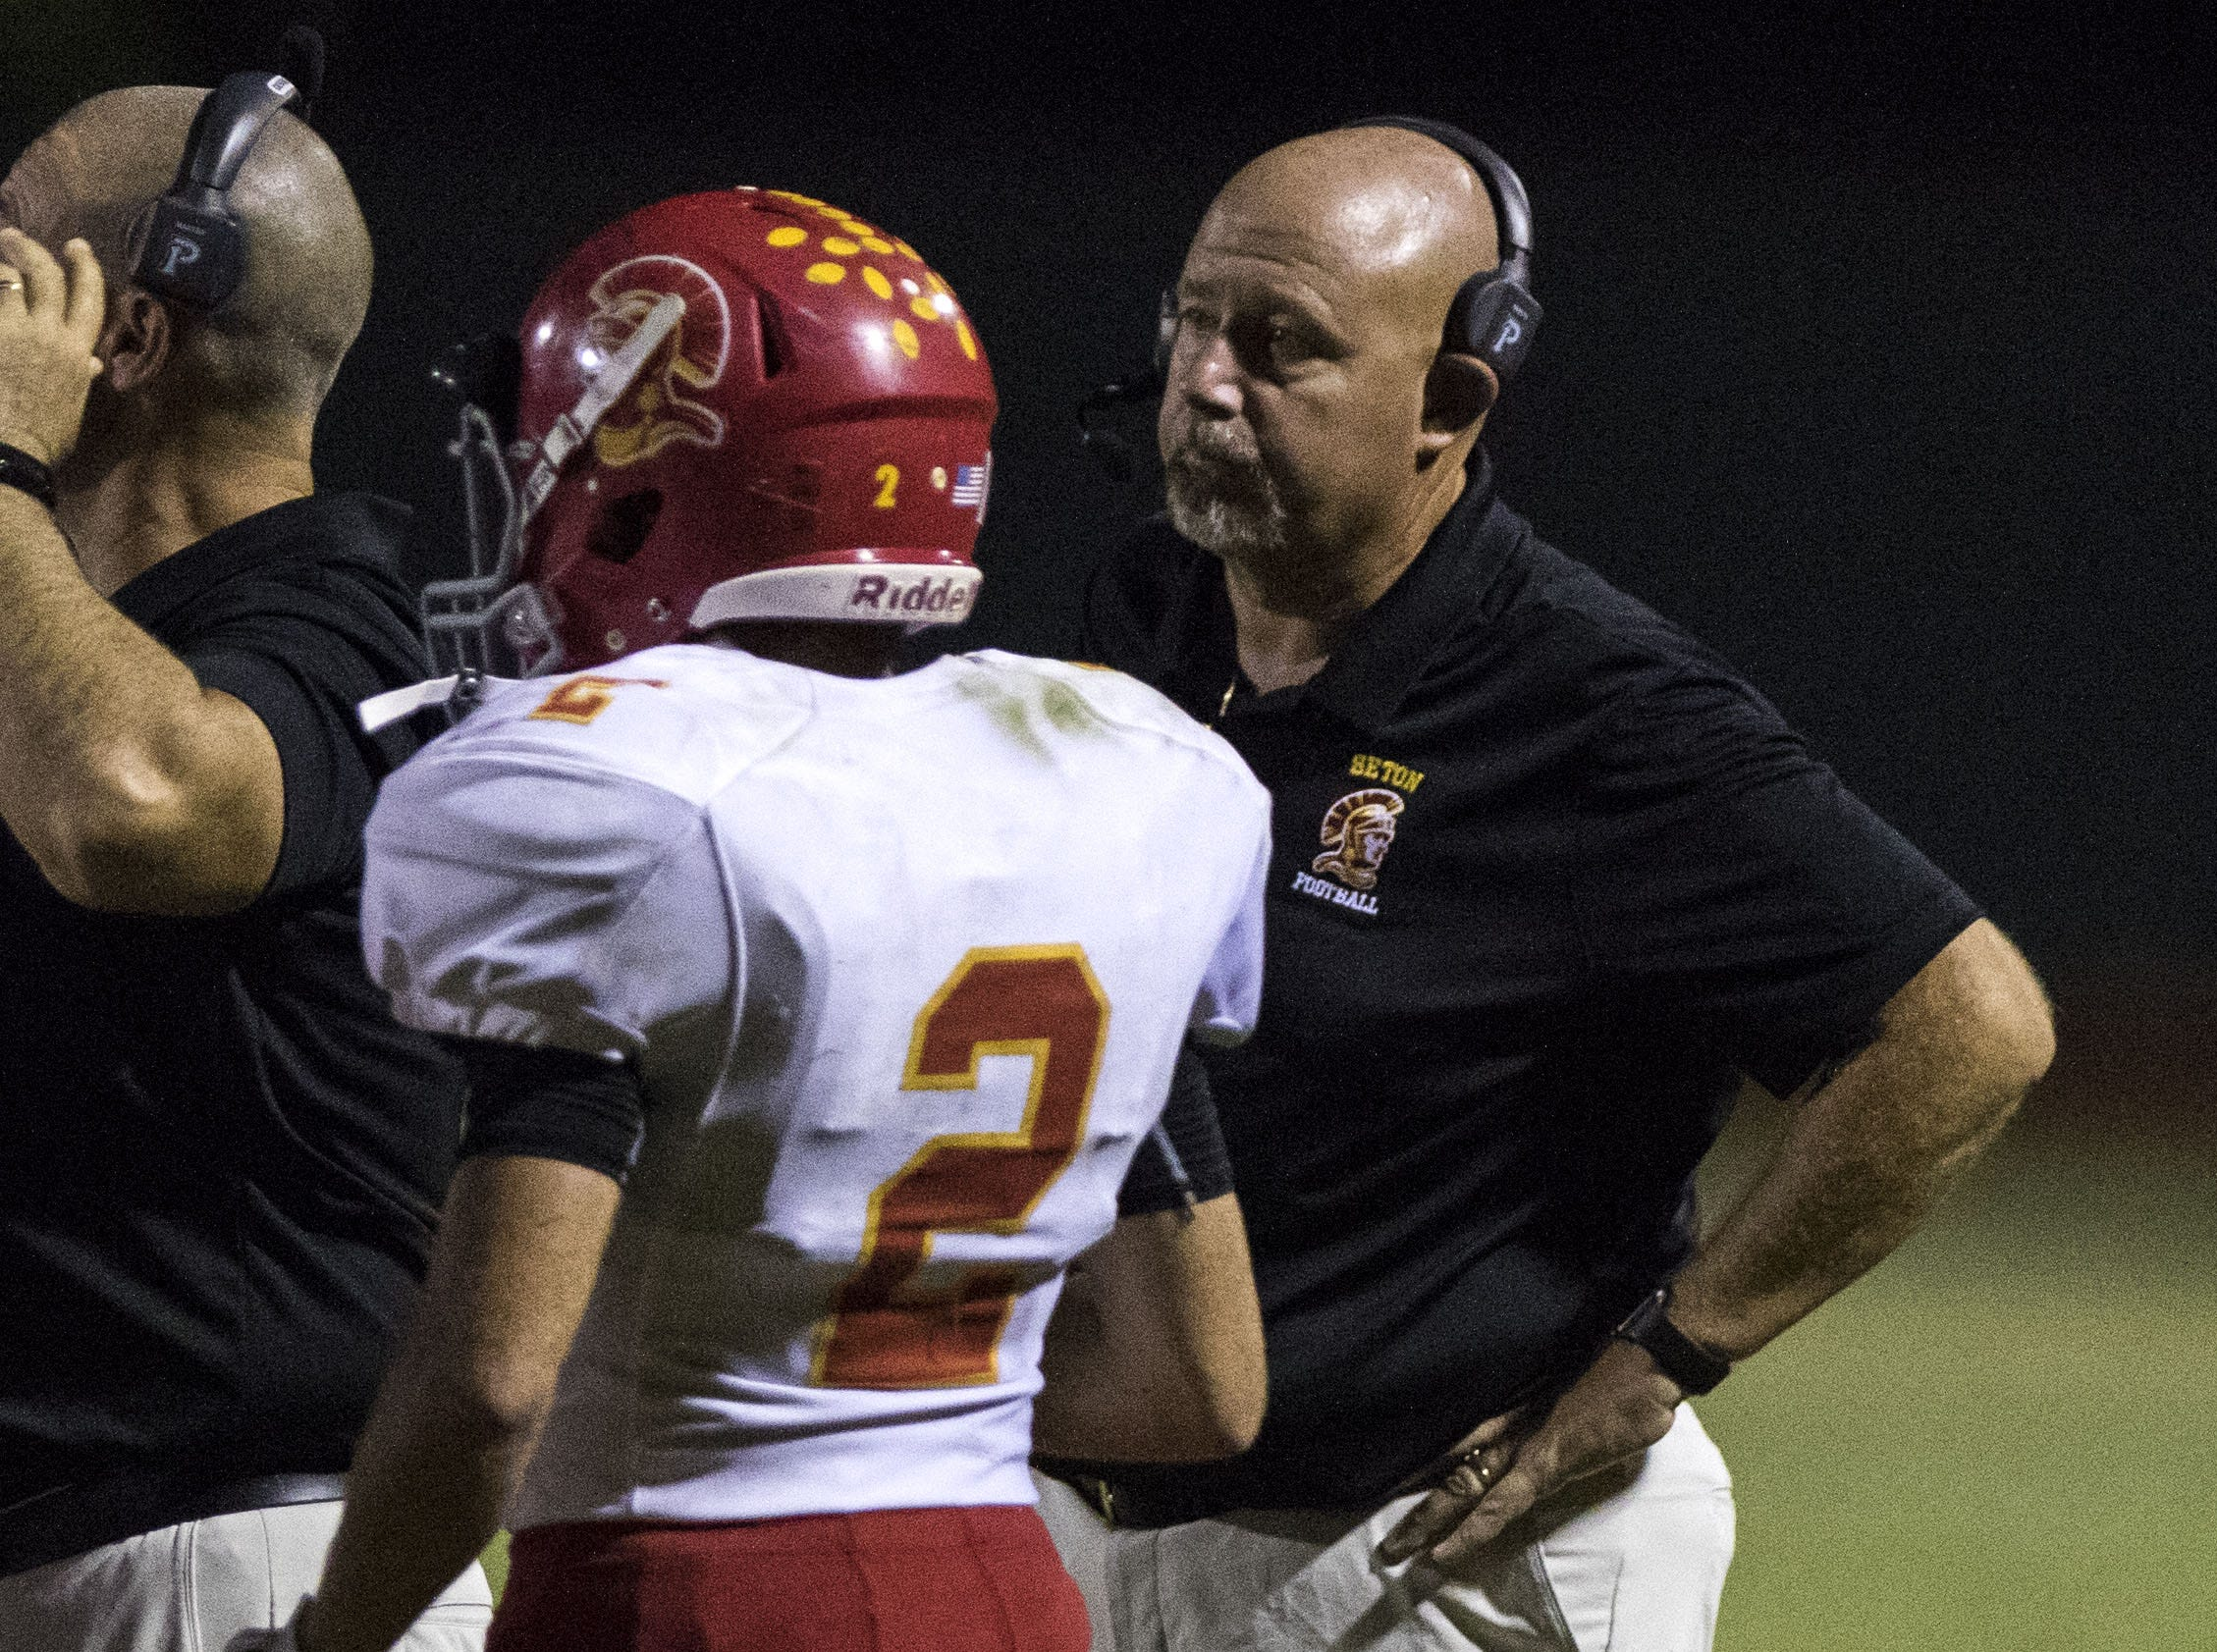 Seton coach Mike Chiurco listens in during their game against Mesquite in Gilbert Friday, Sept. 21, 2018. #azhsfb